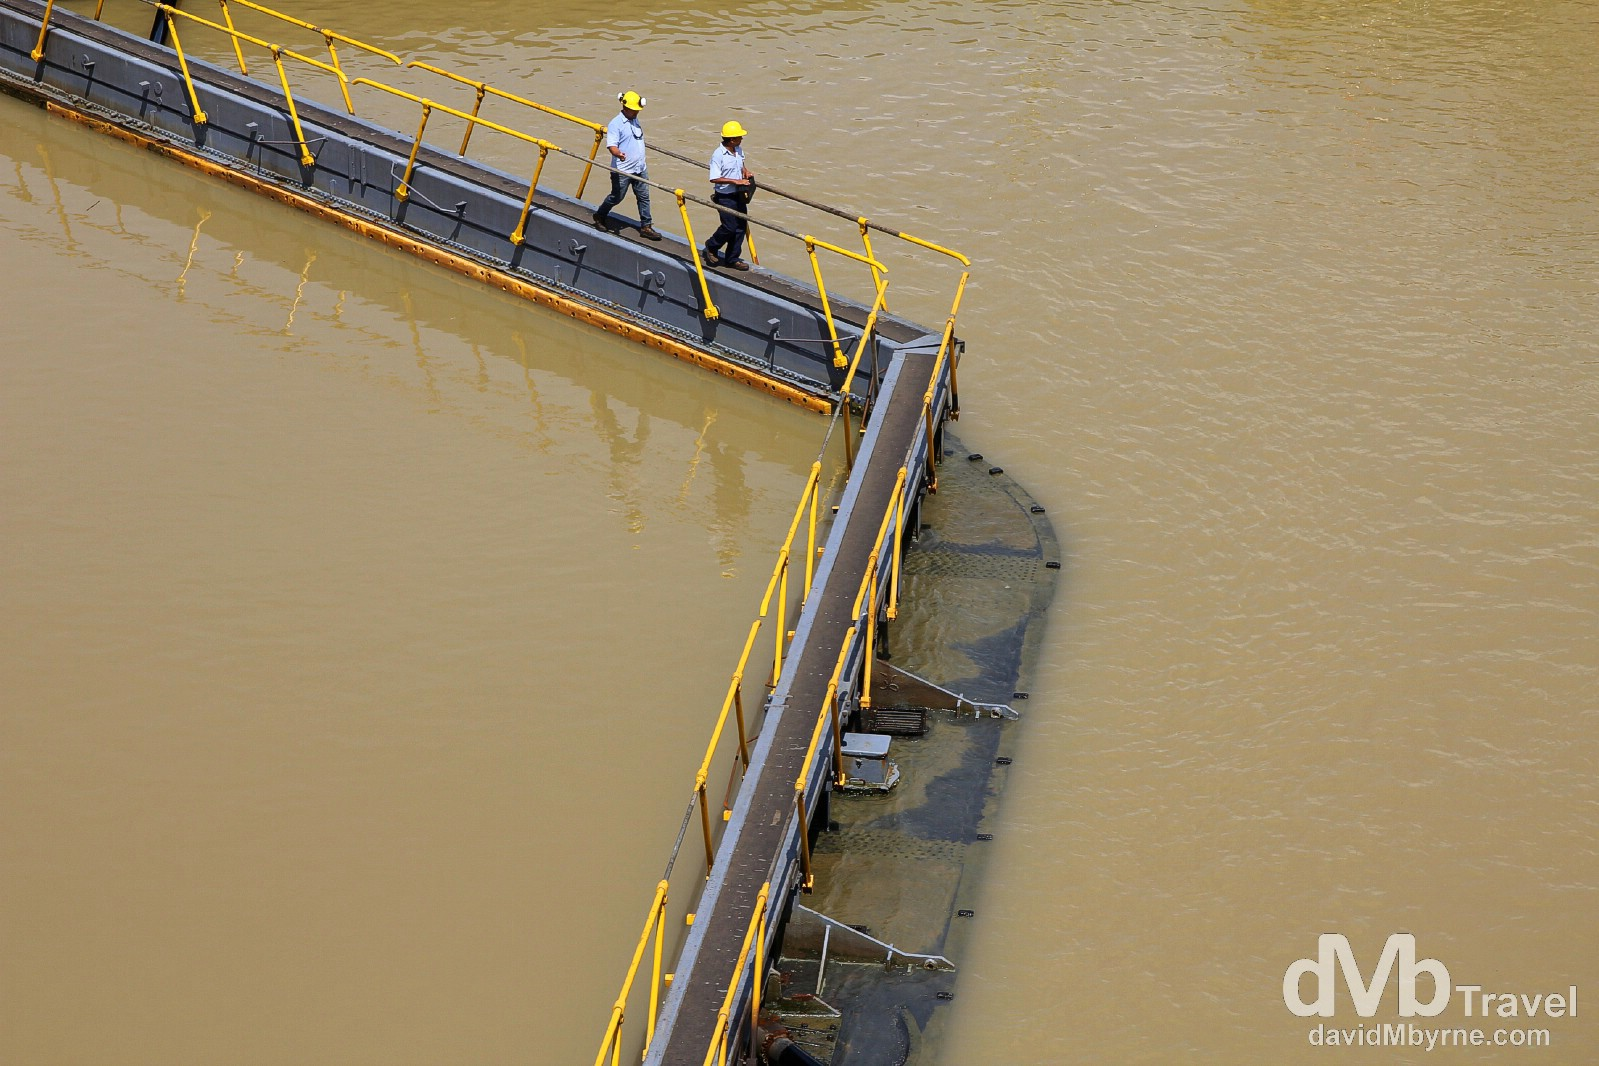 Workers crossing the Miraflores Locks of the Panama Canal, Panama. July 1st 2013.